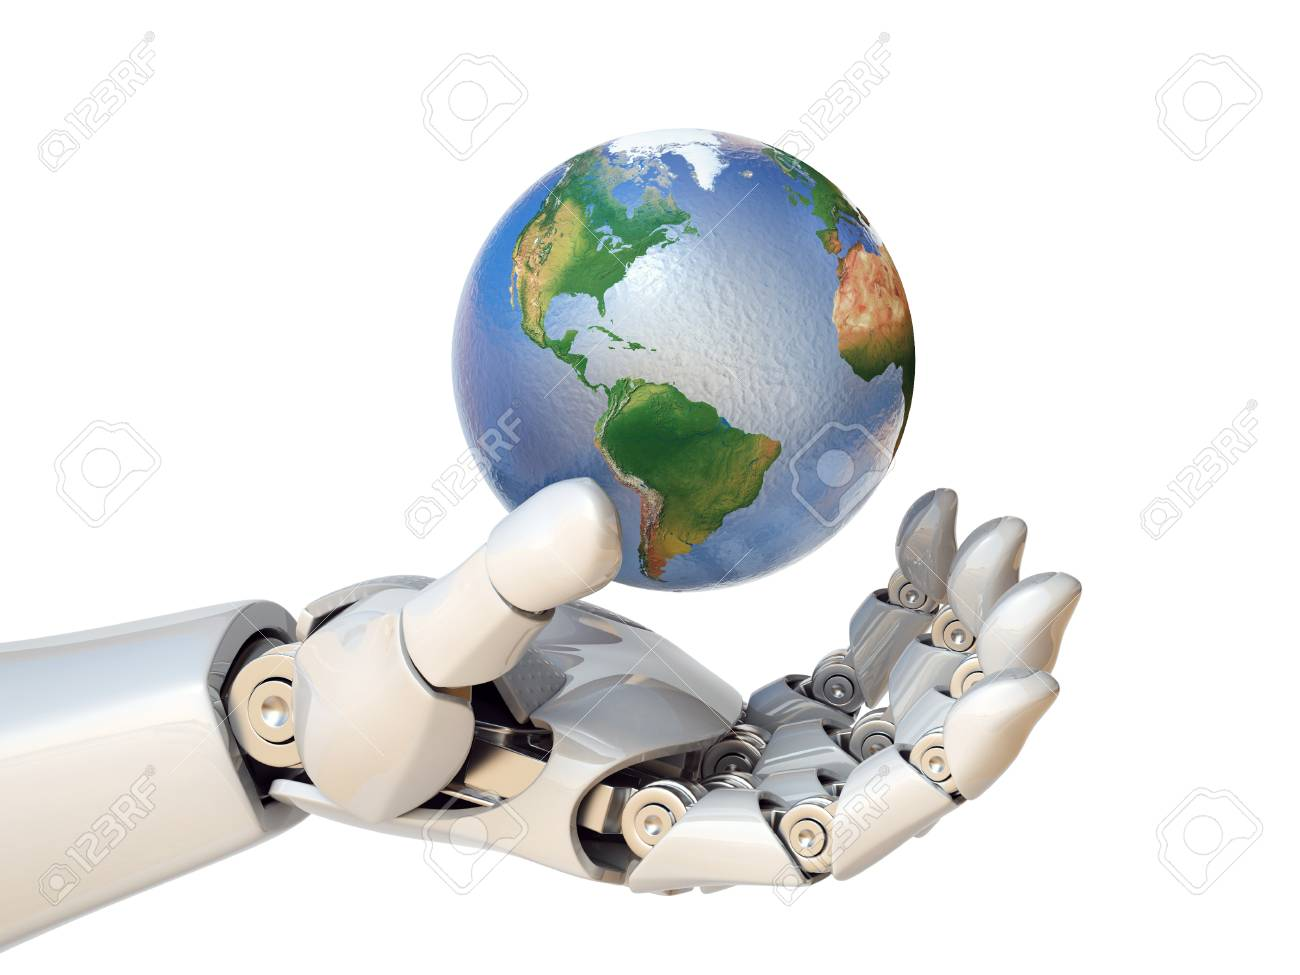 Robot hand holding planet Earth 3d rendering isolated illustration - 88979922